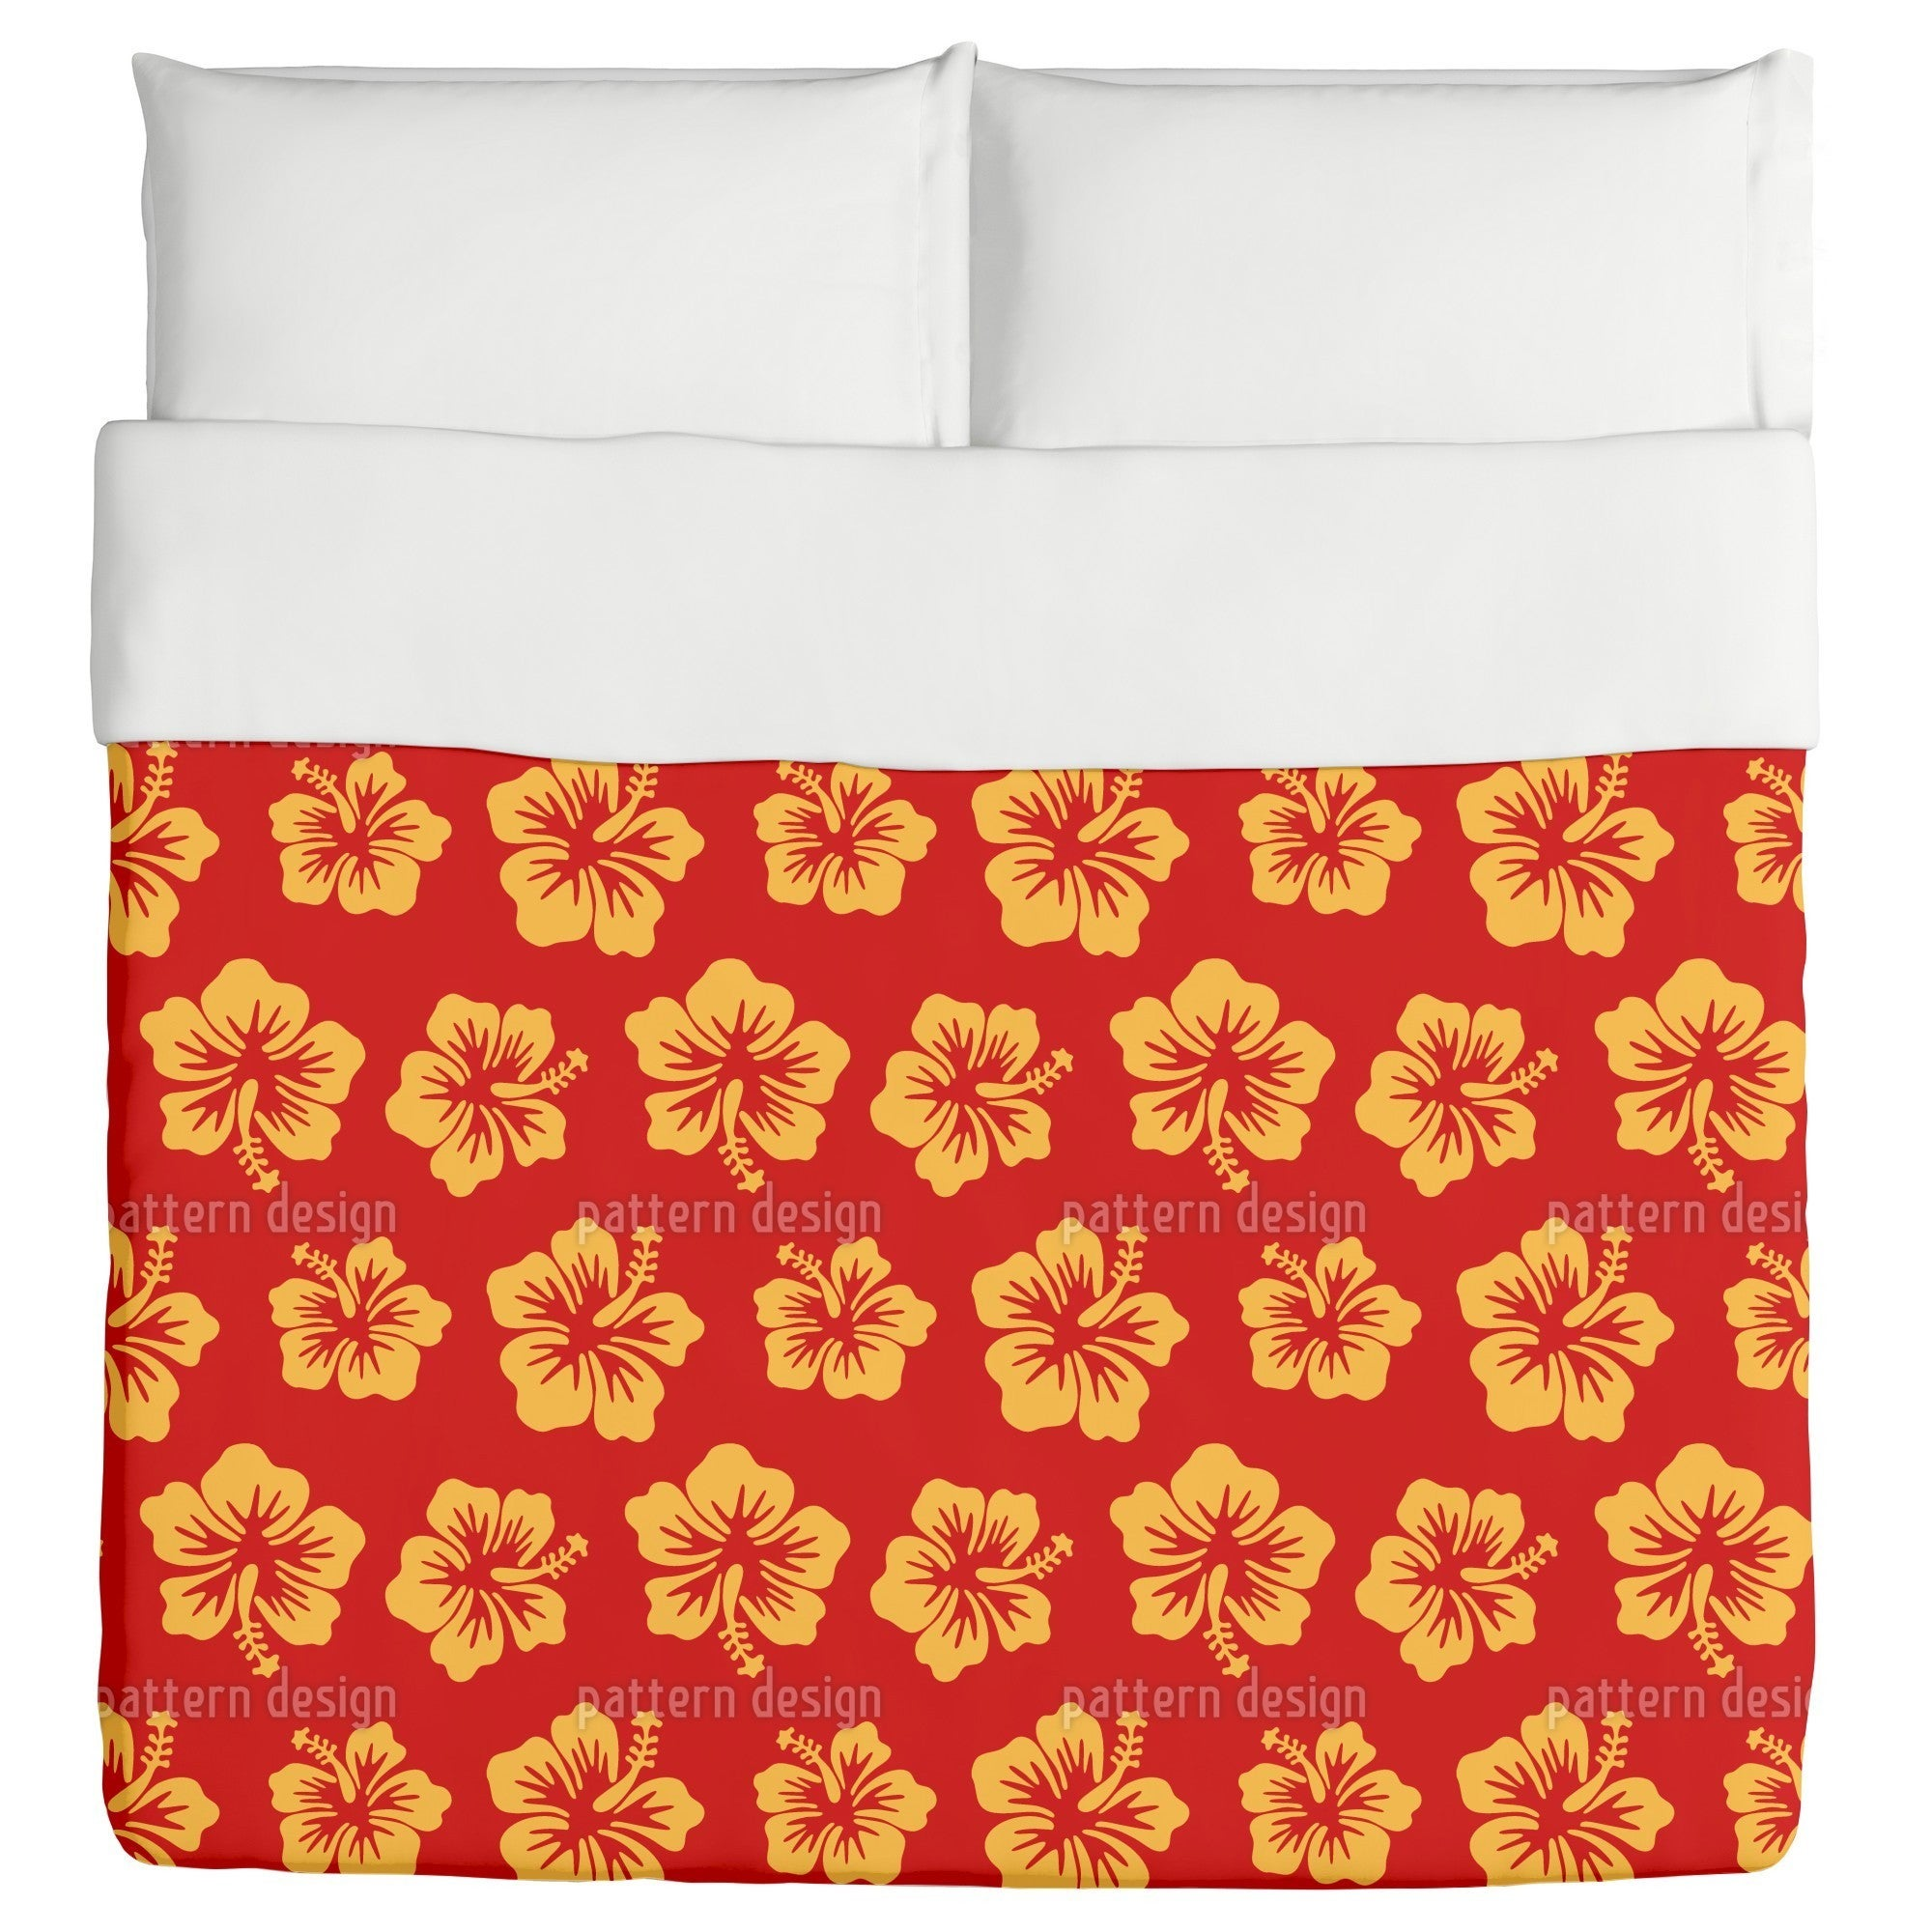 Hibiscus greetings from hawaii duvet cover free shipping today hibiscus greetings from hawaii duvet cover free shipping today overstock 19339596 kristyandbryce Choice Image